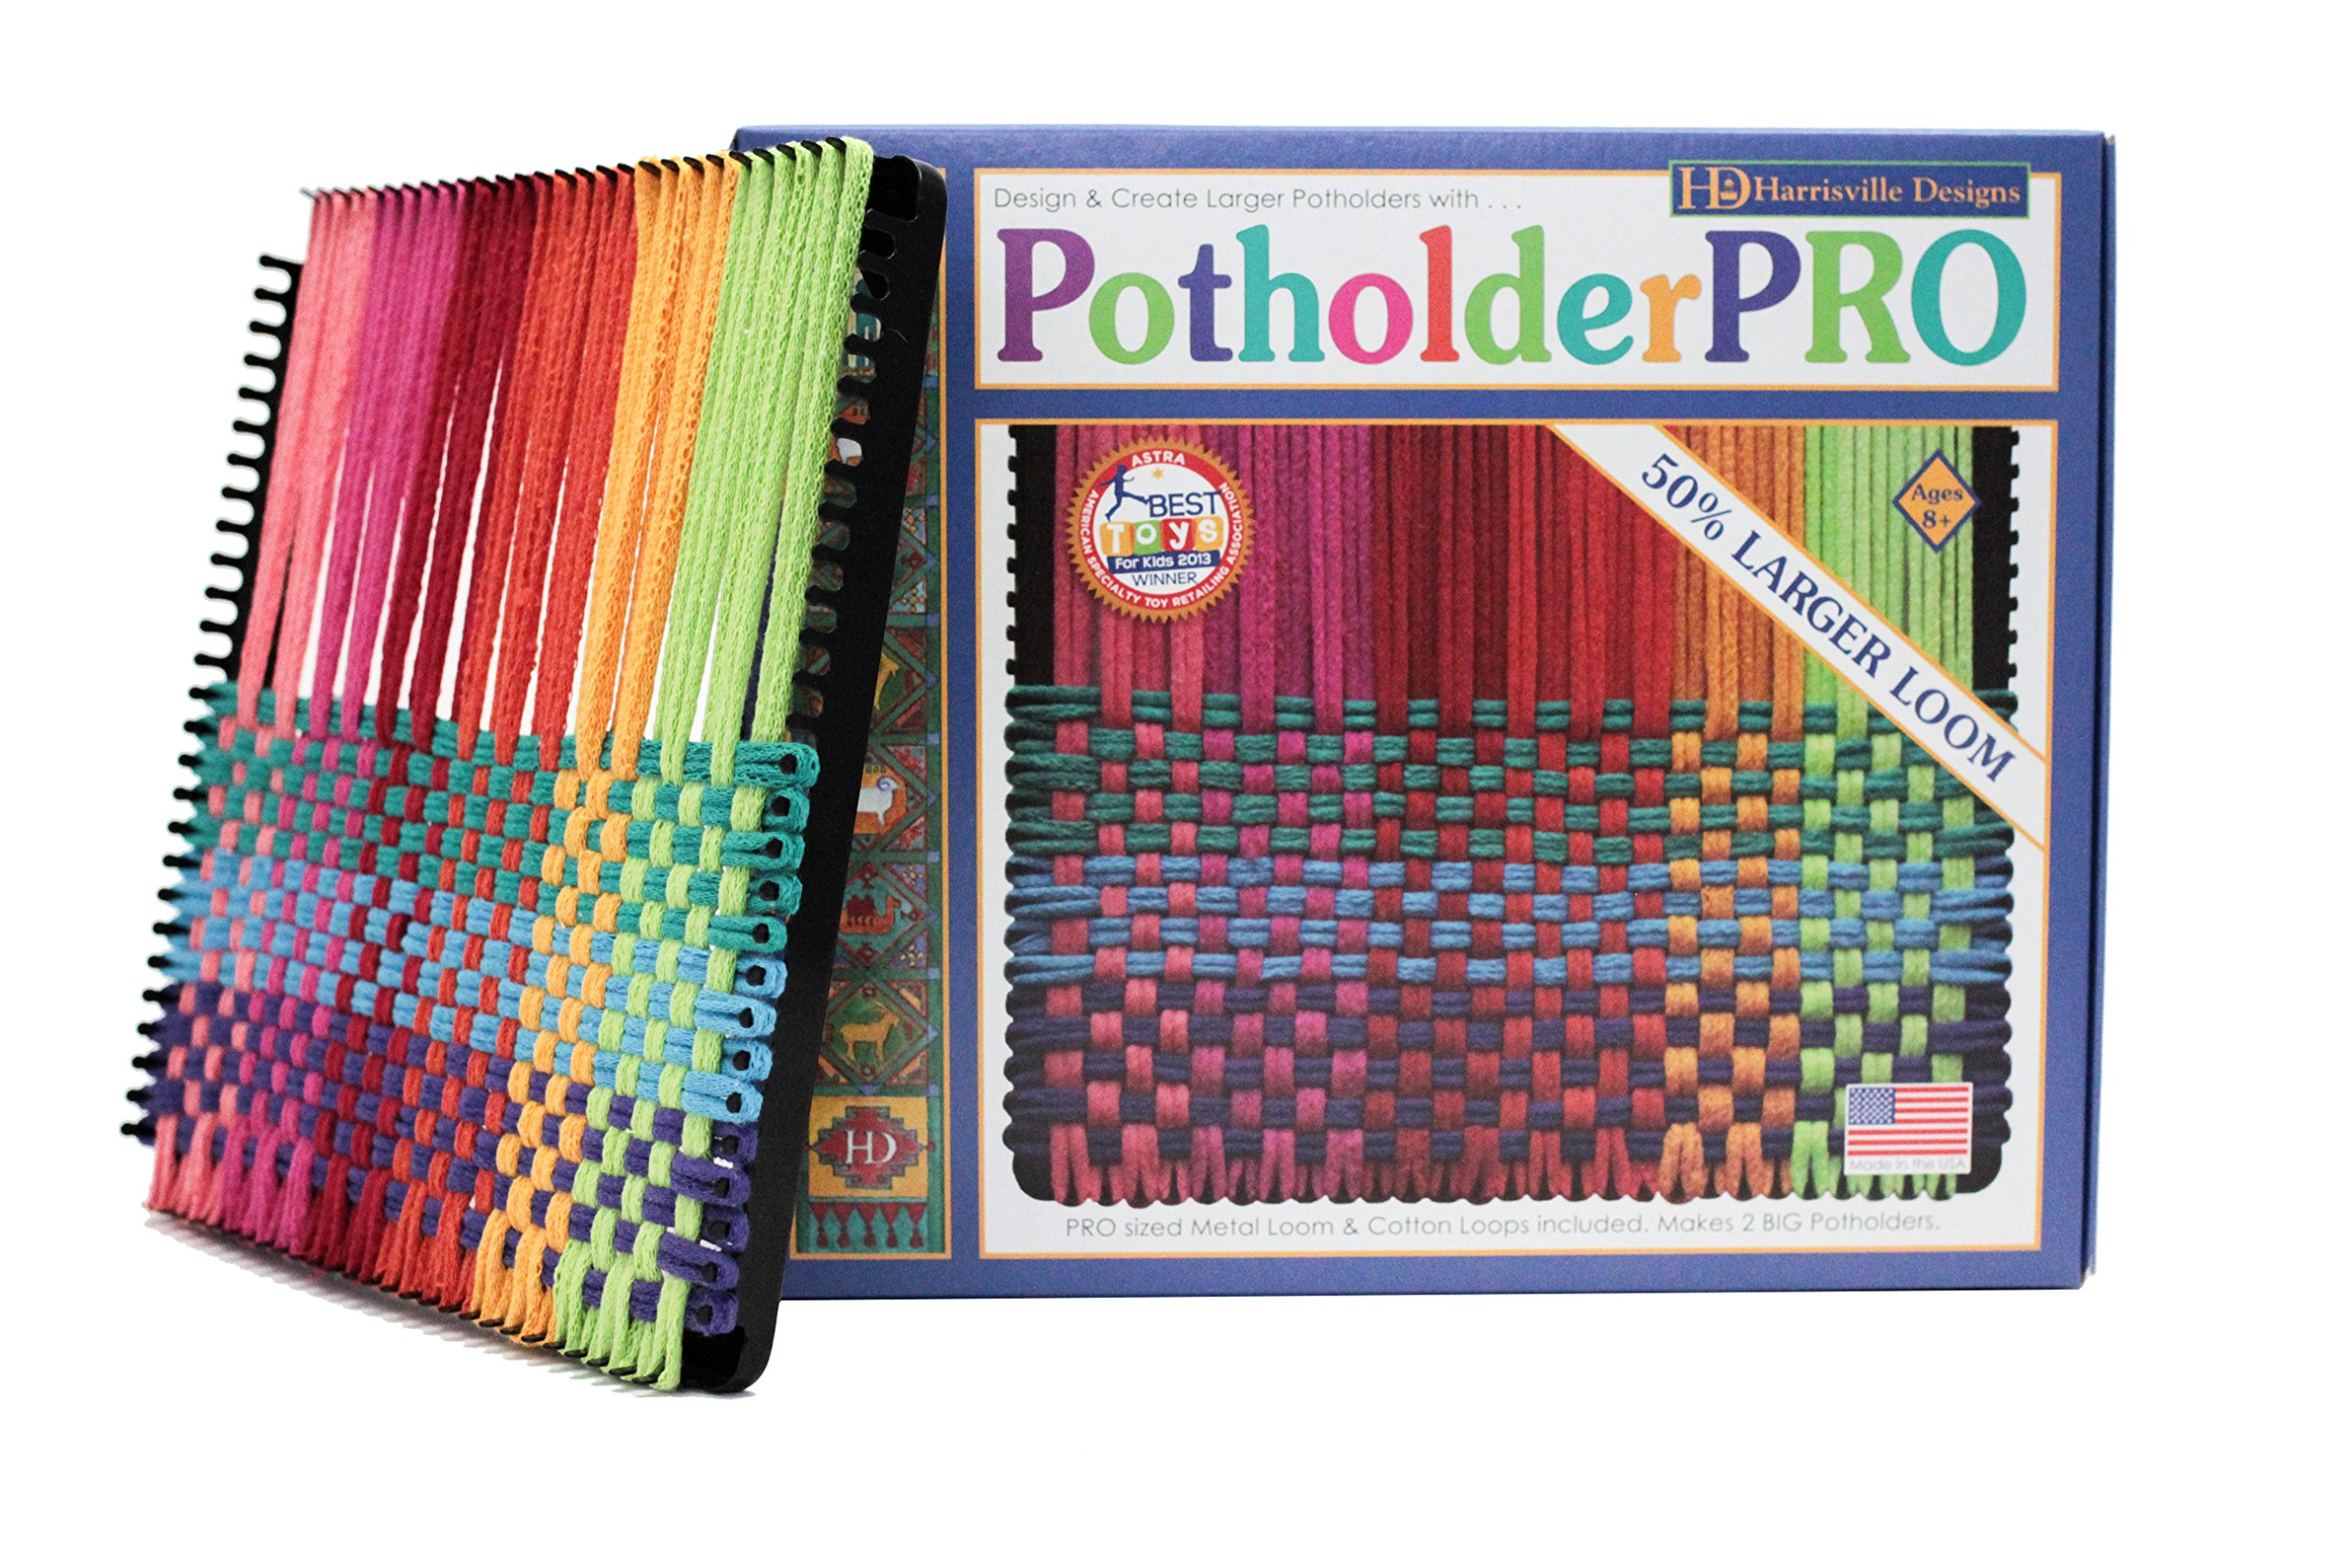 Harrisville Designs 10'' Potholder Loom (PRO Size) Kit, Sturdy Metal Loom with Loops to Make 2 Potholders (Packaging May Vary), Black - Made in The USA by Harrisville Designs